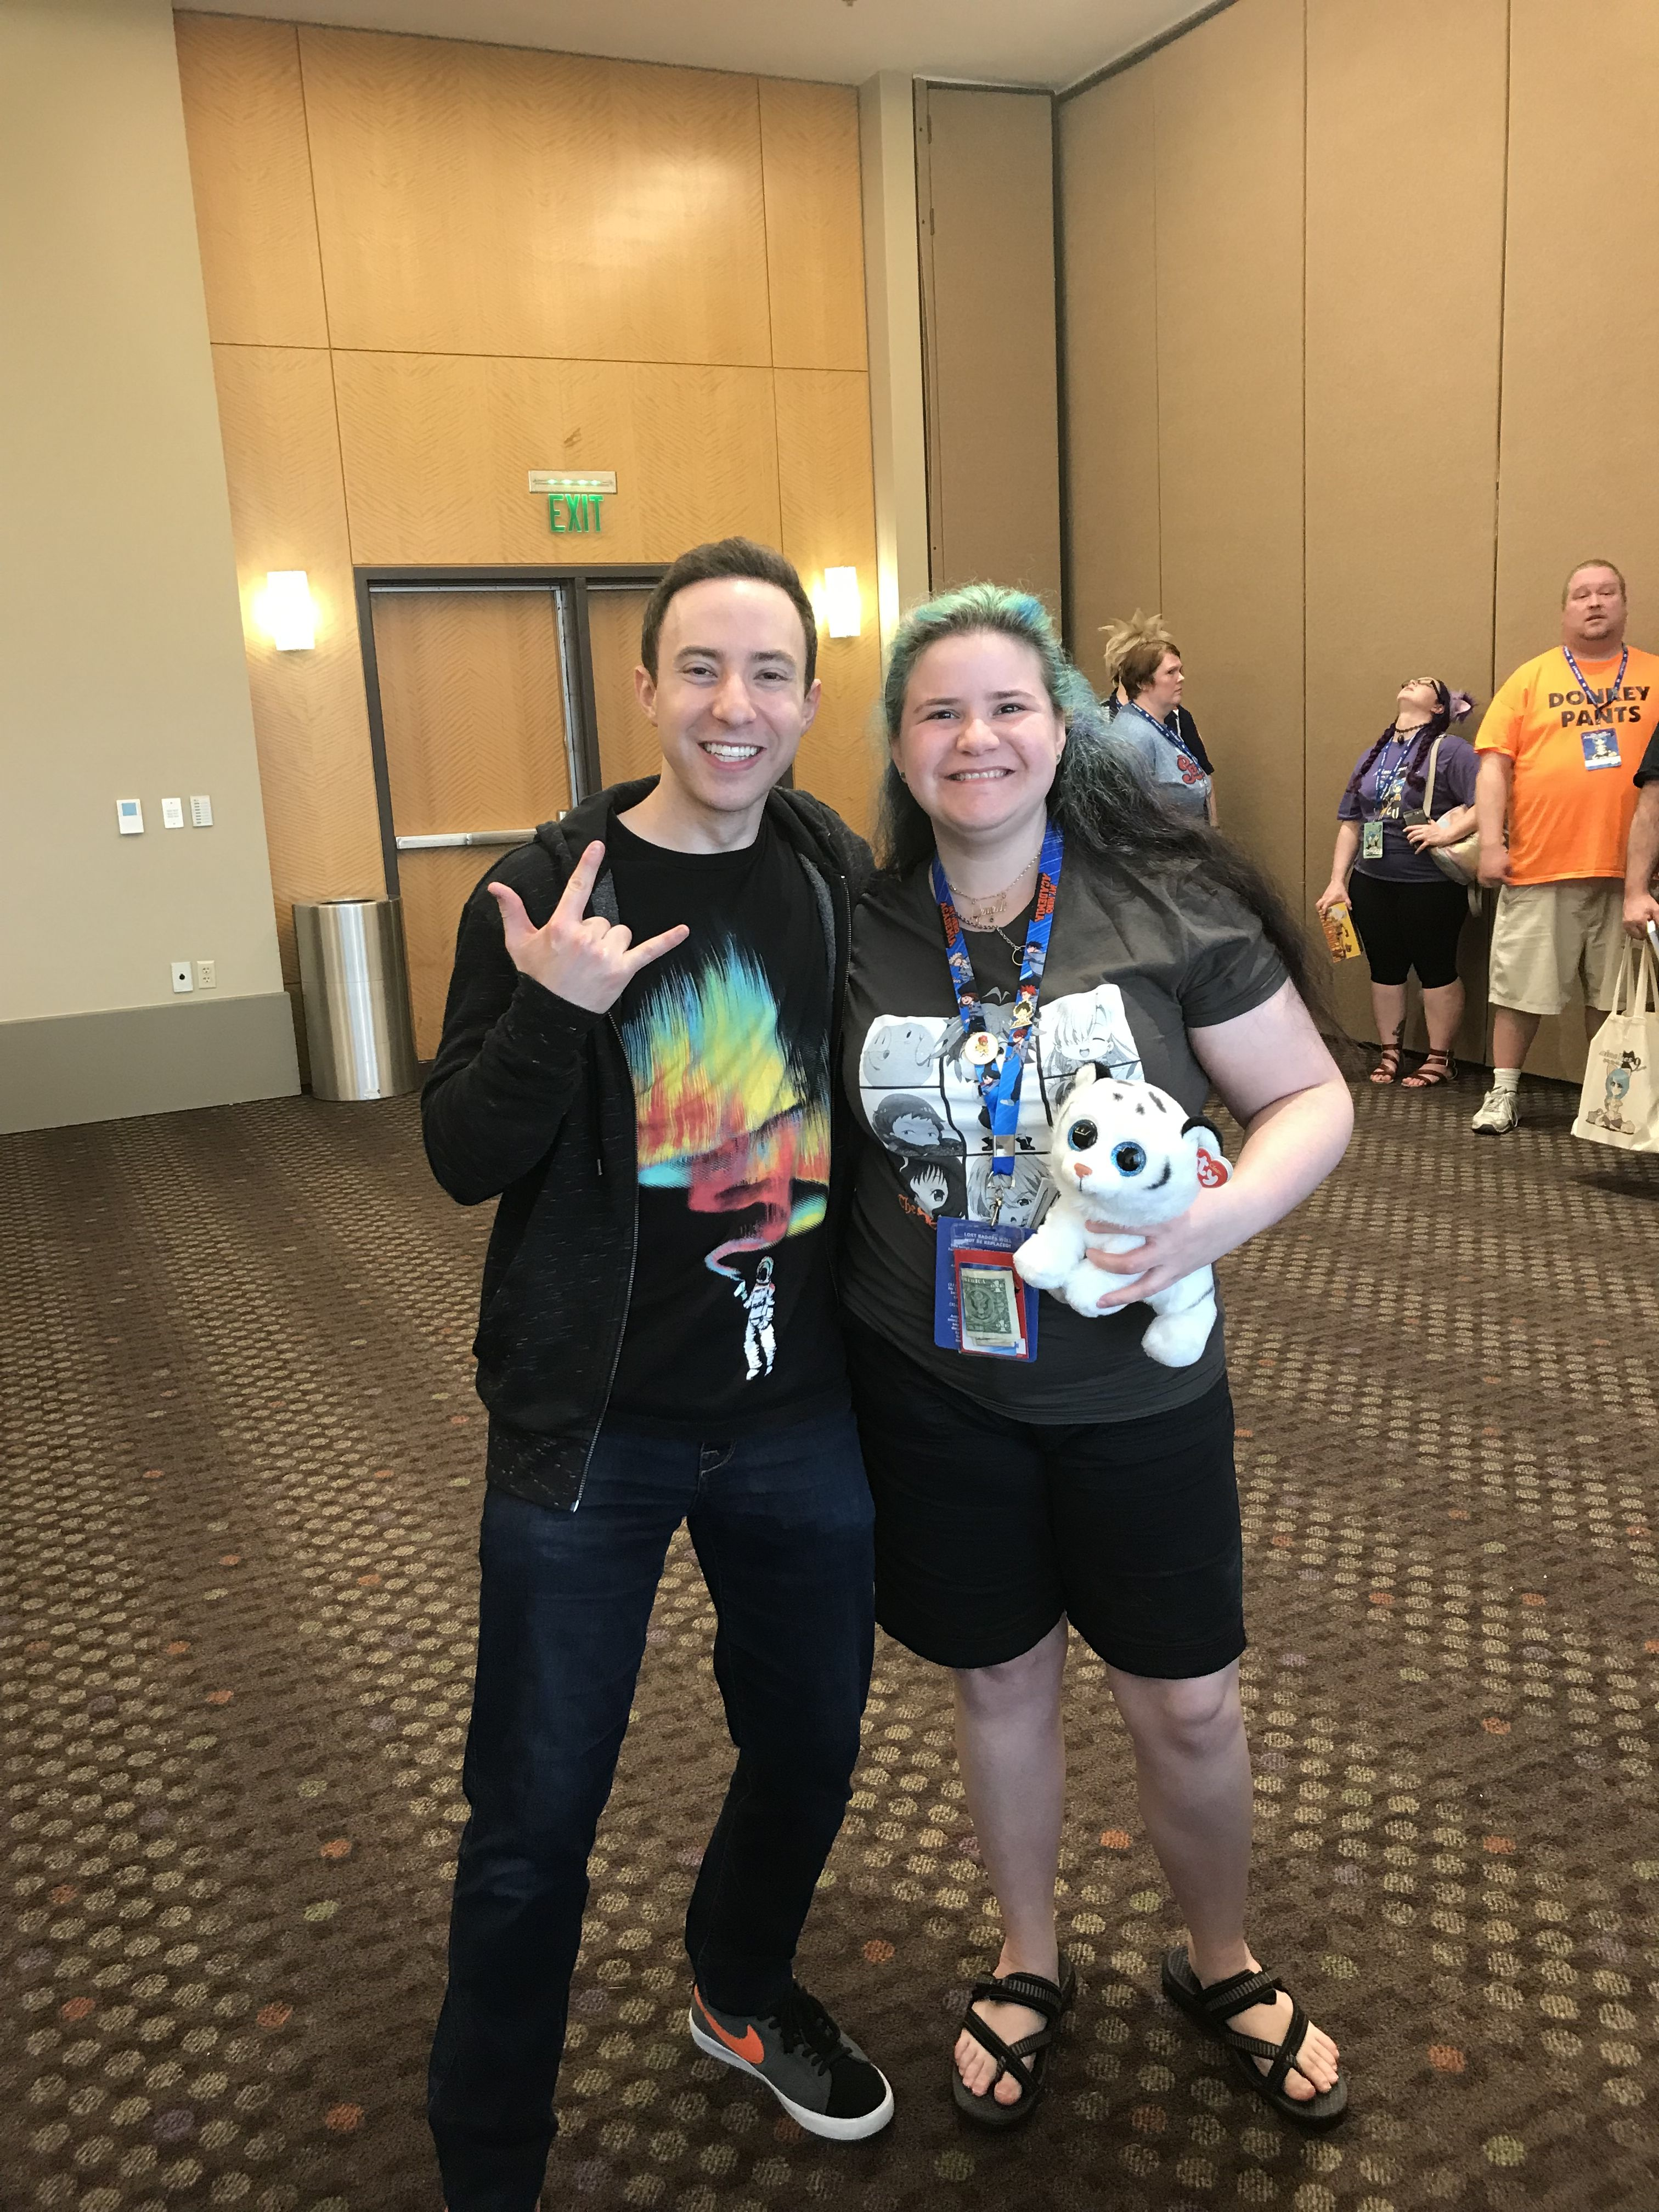 Me and Max Mittelman Anime conventions, Christmas